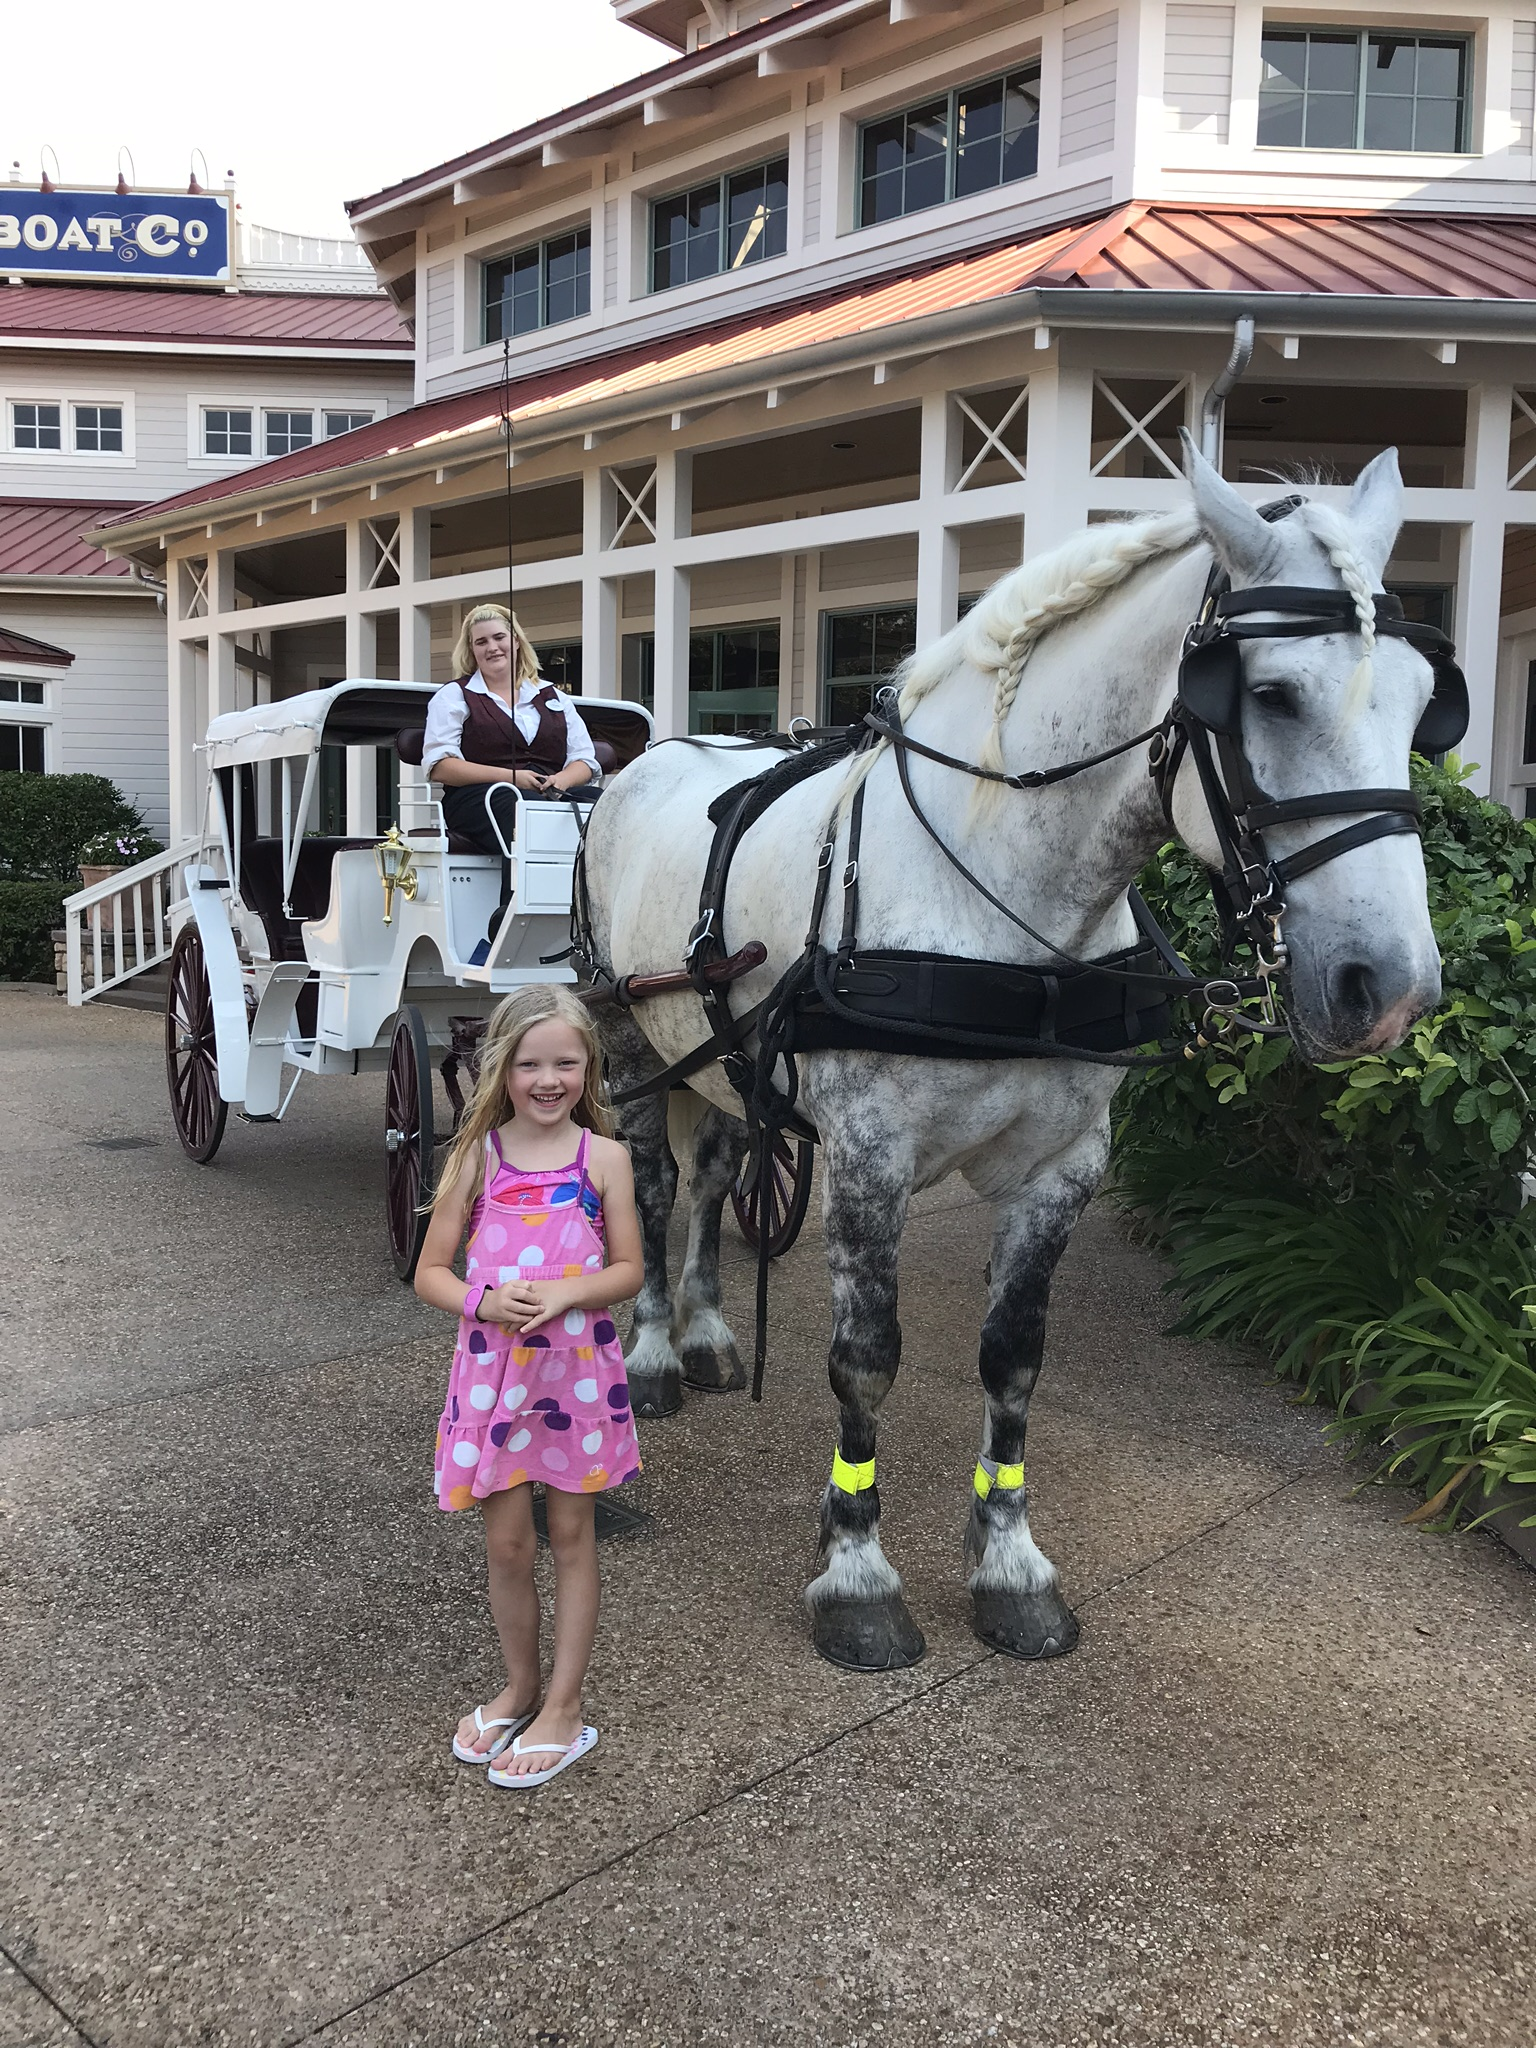 little girl standing in front of a horse and carriage